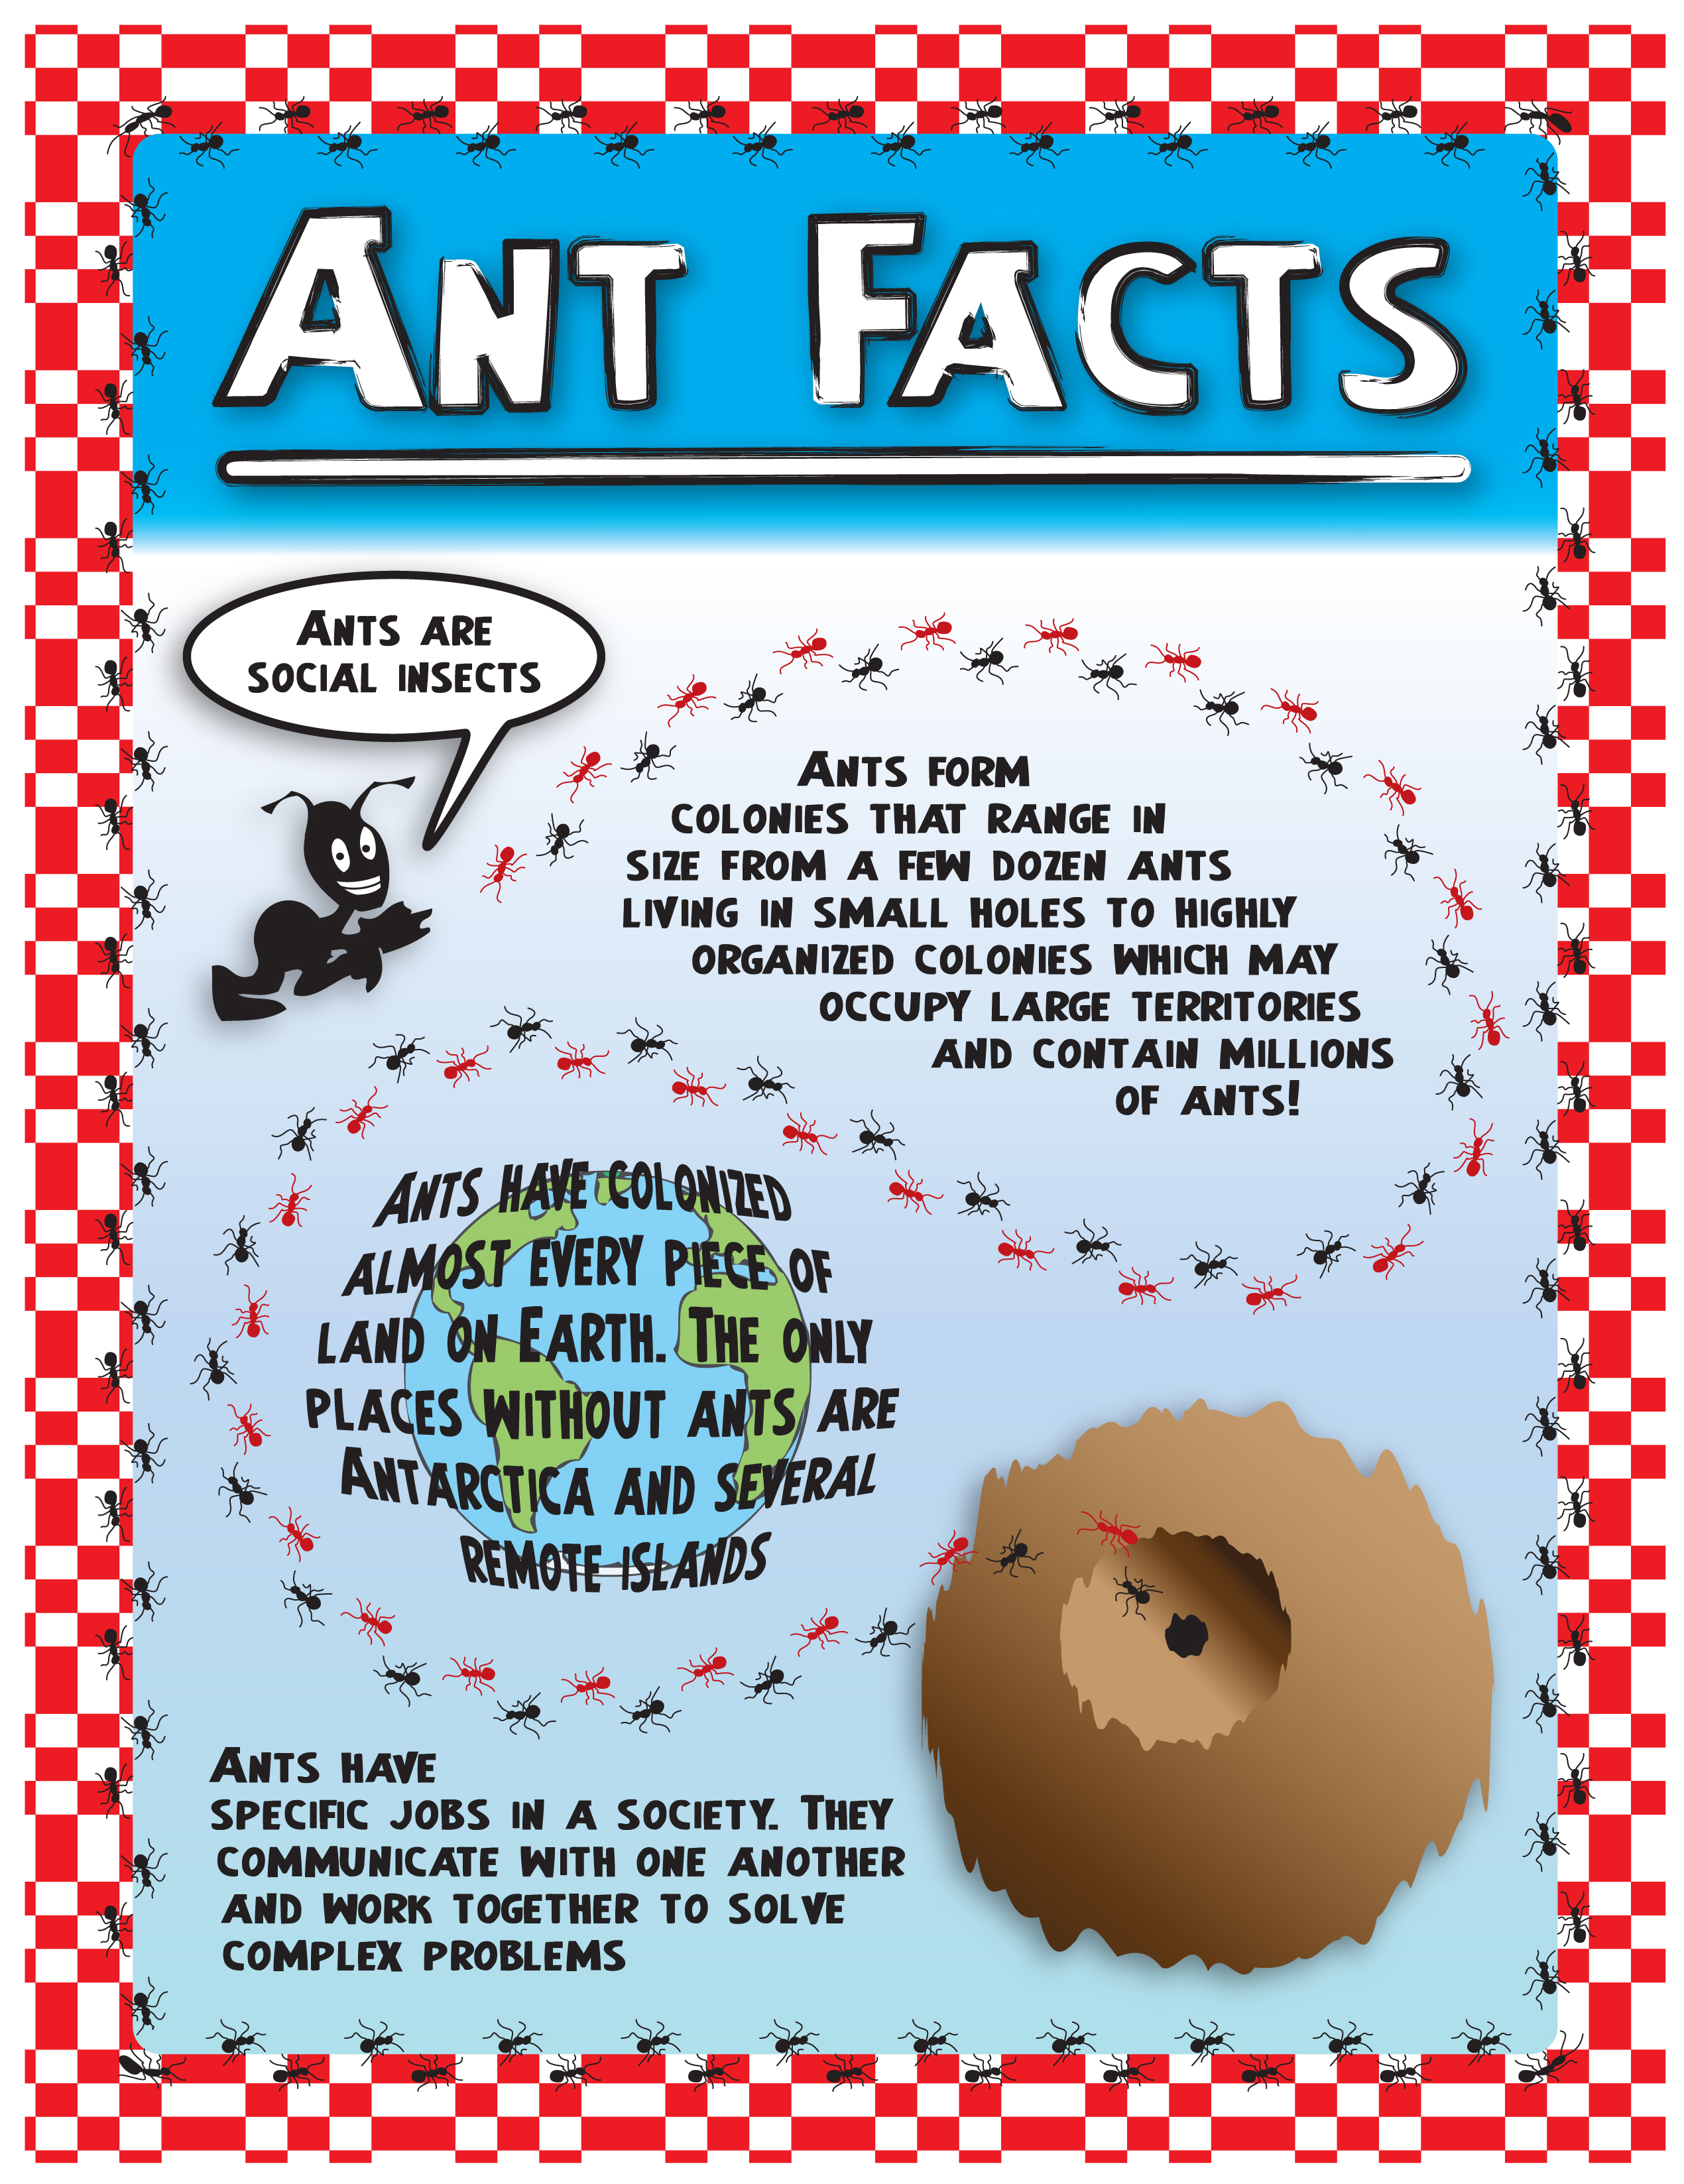 fun facts about ants for preschoolers illustration by andrew lyon at coroflot 219